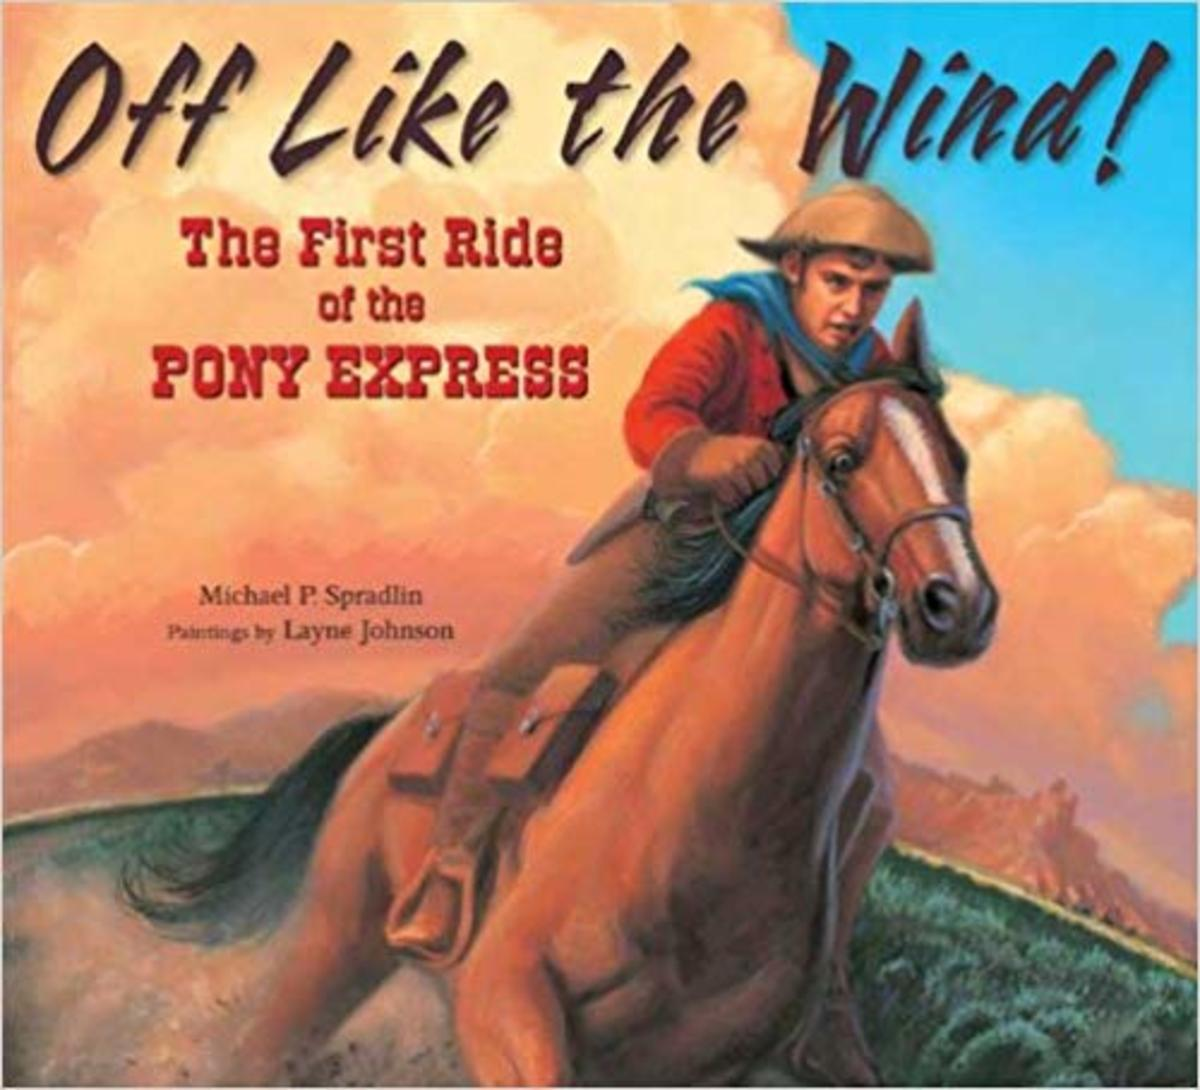 Off Like the Wind!: The First Ride of the Pony Express by Michael P. Spradlin